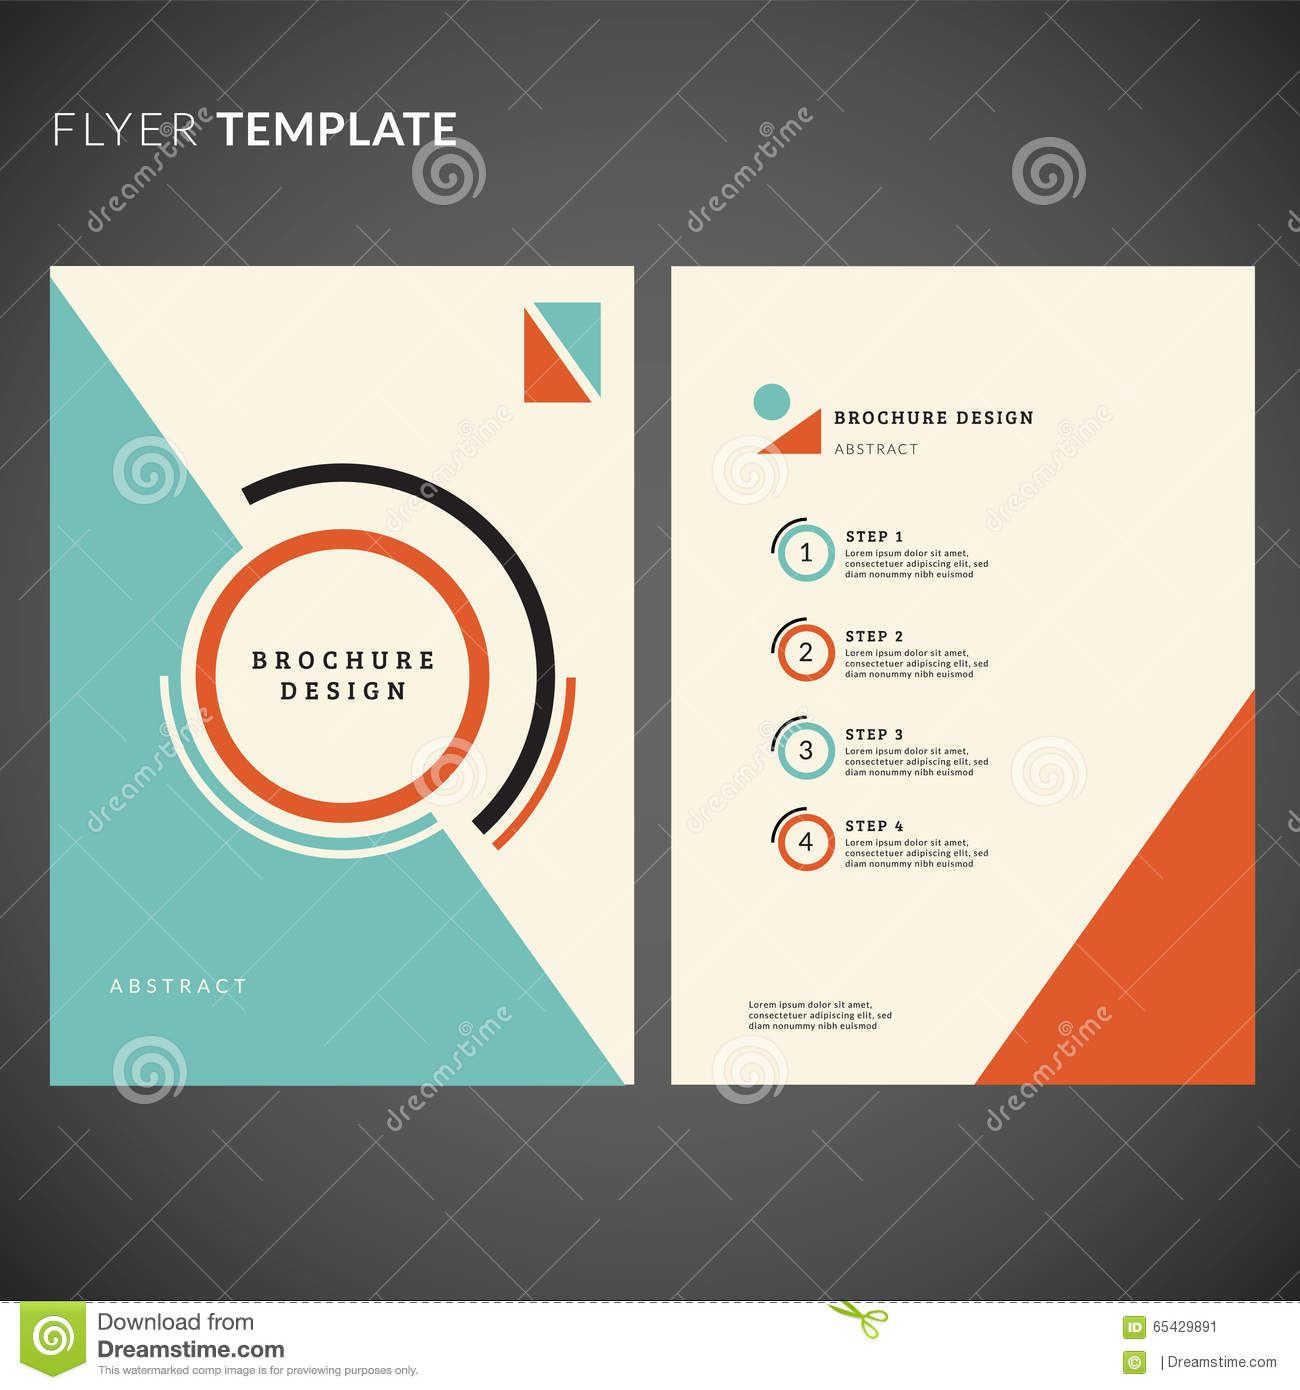 Geometric Flyer Template | Geometric Flyer Design Flyer Template Stock Vector Illustration